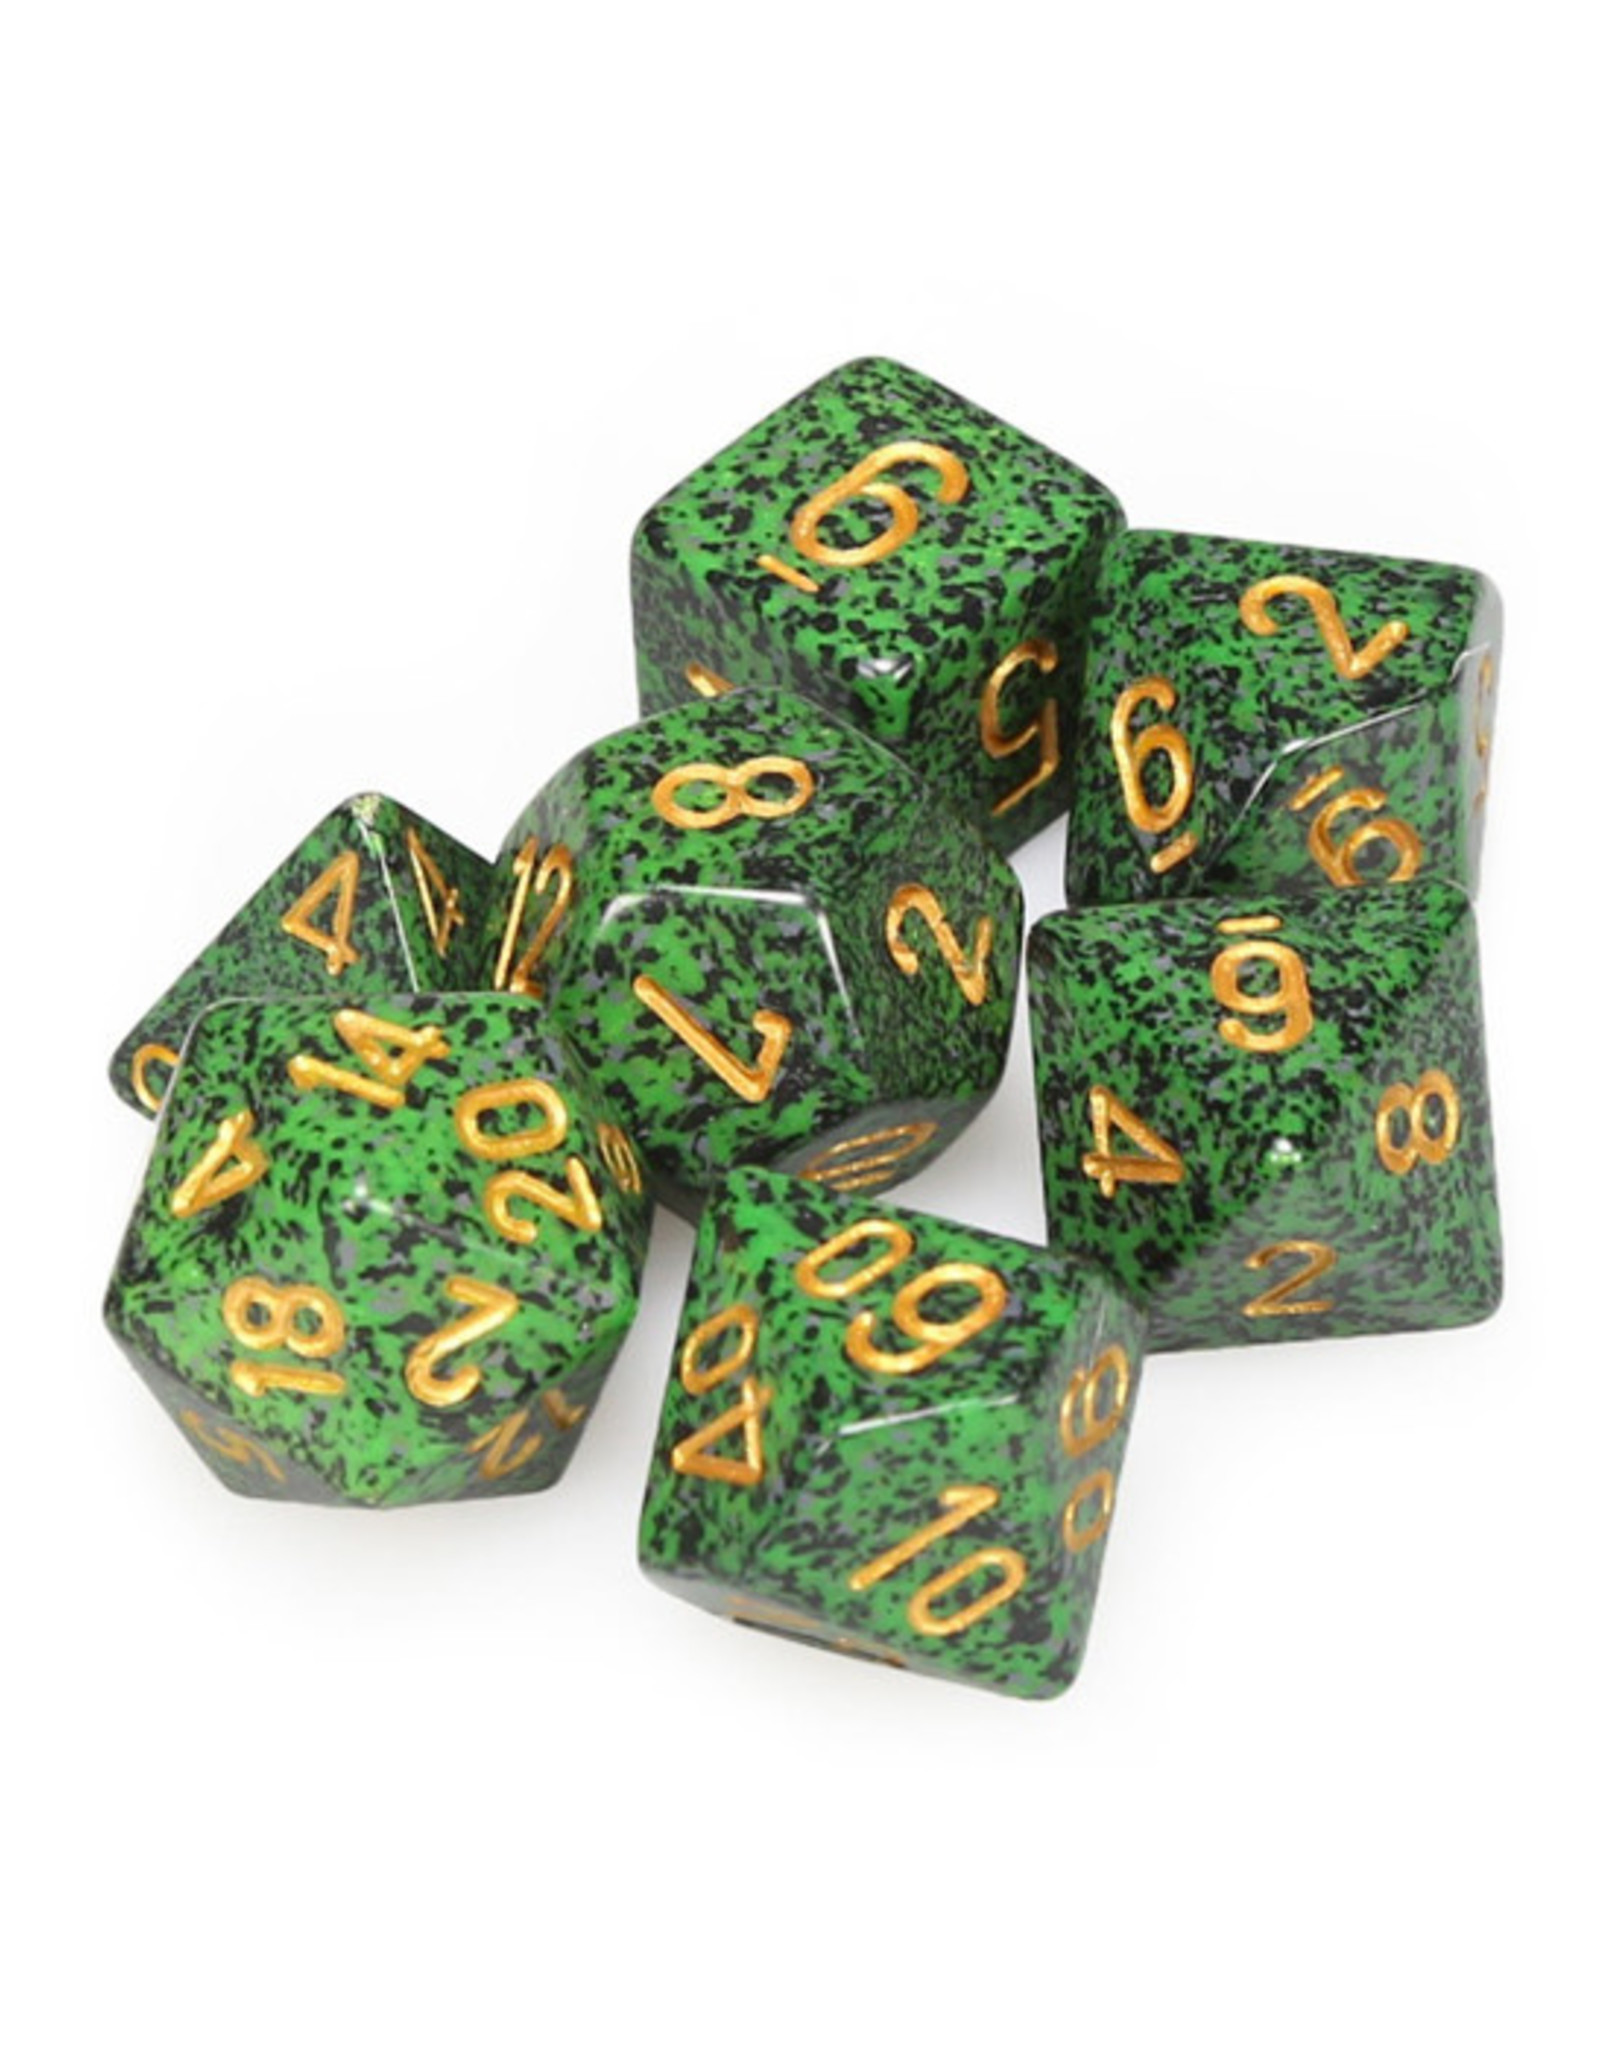 Chessex Chessex: Poly 7 Set - Speckled - Golden Recon